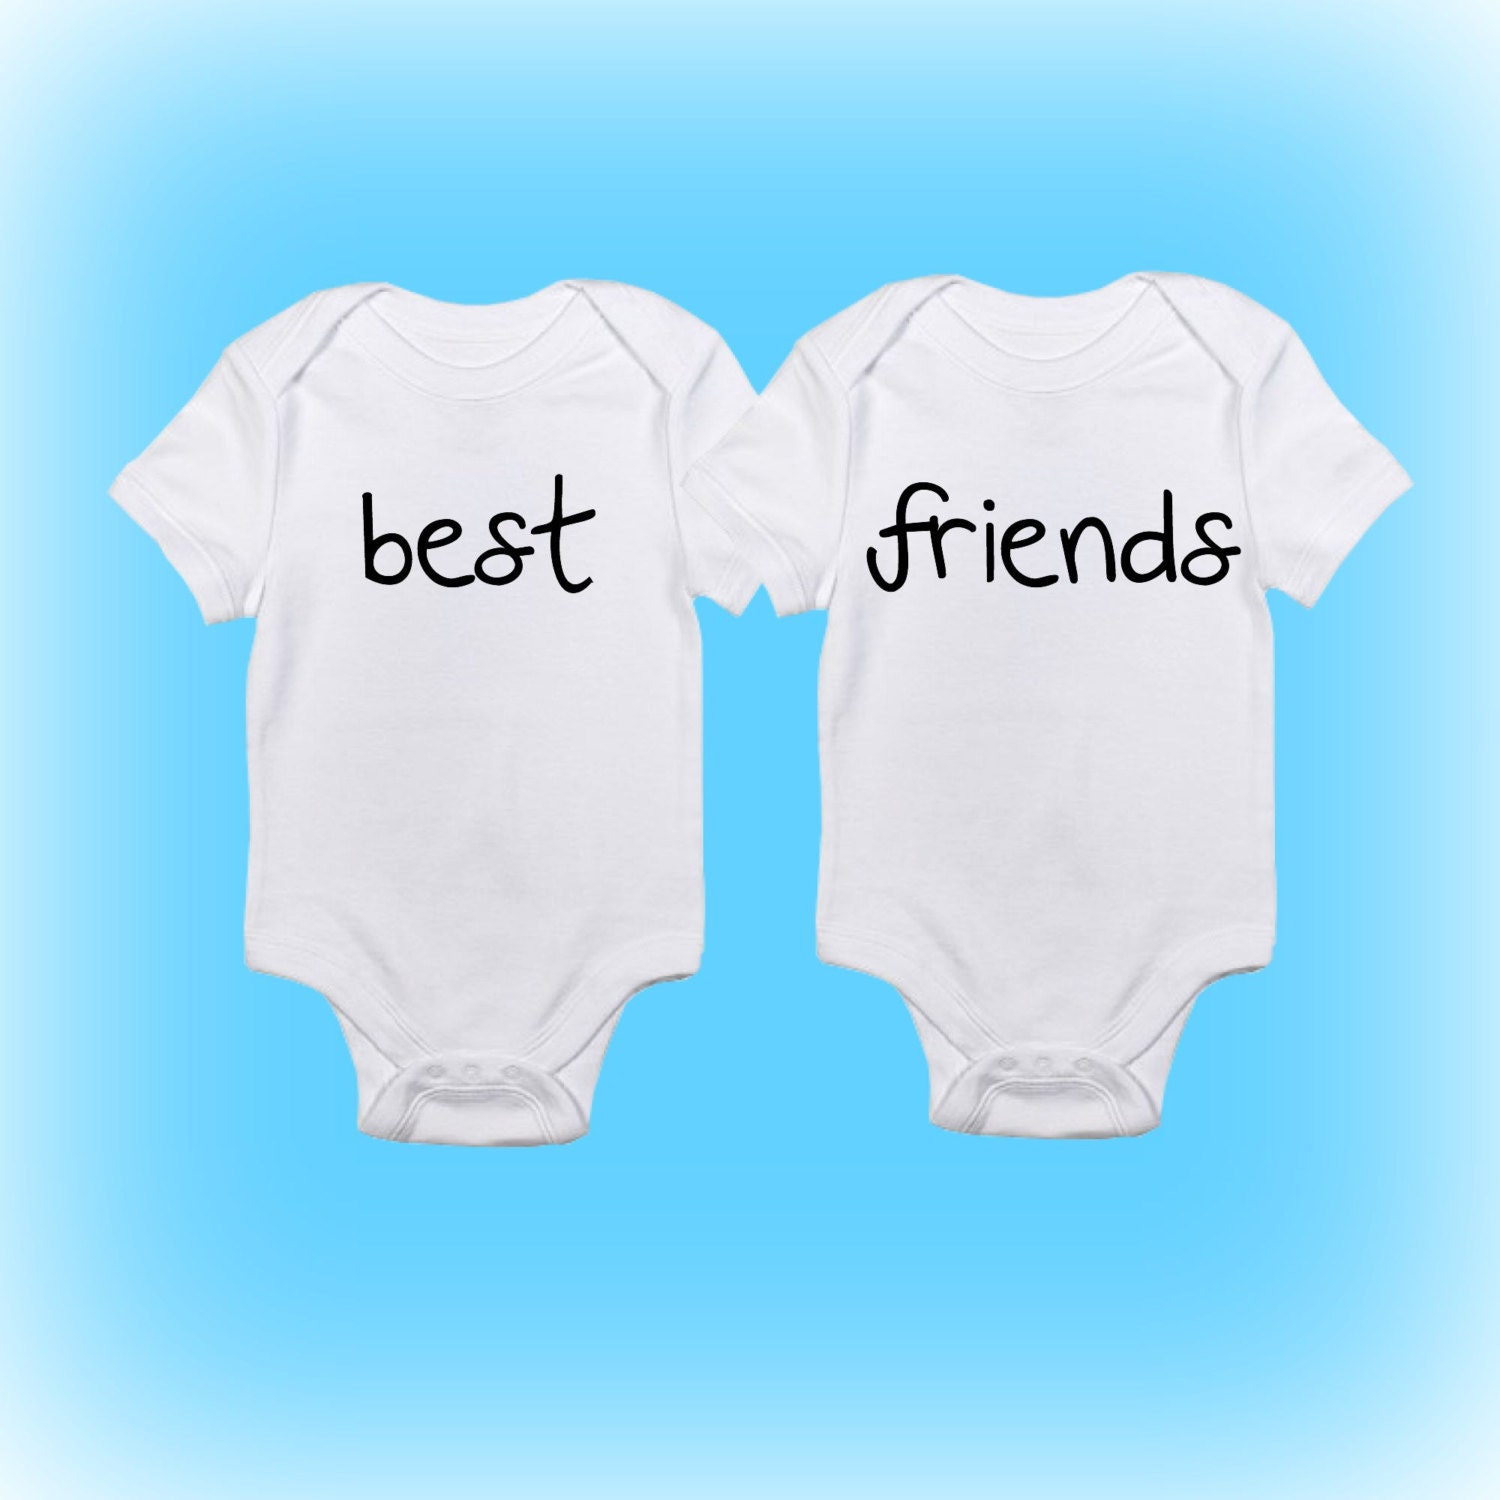 Twins esies Baby Boy Baby Girl Baby Clothing Unique